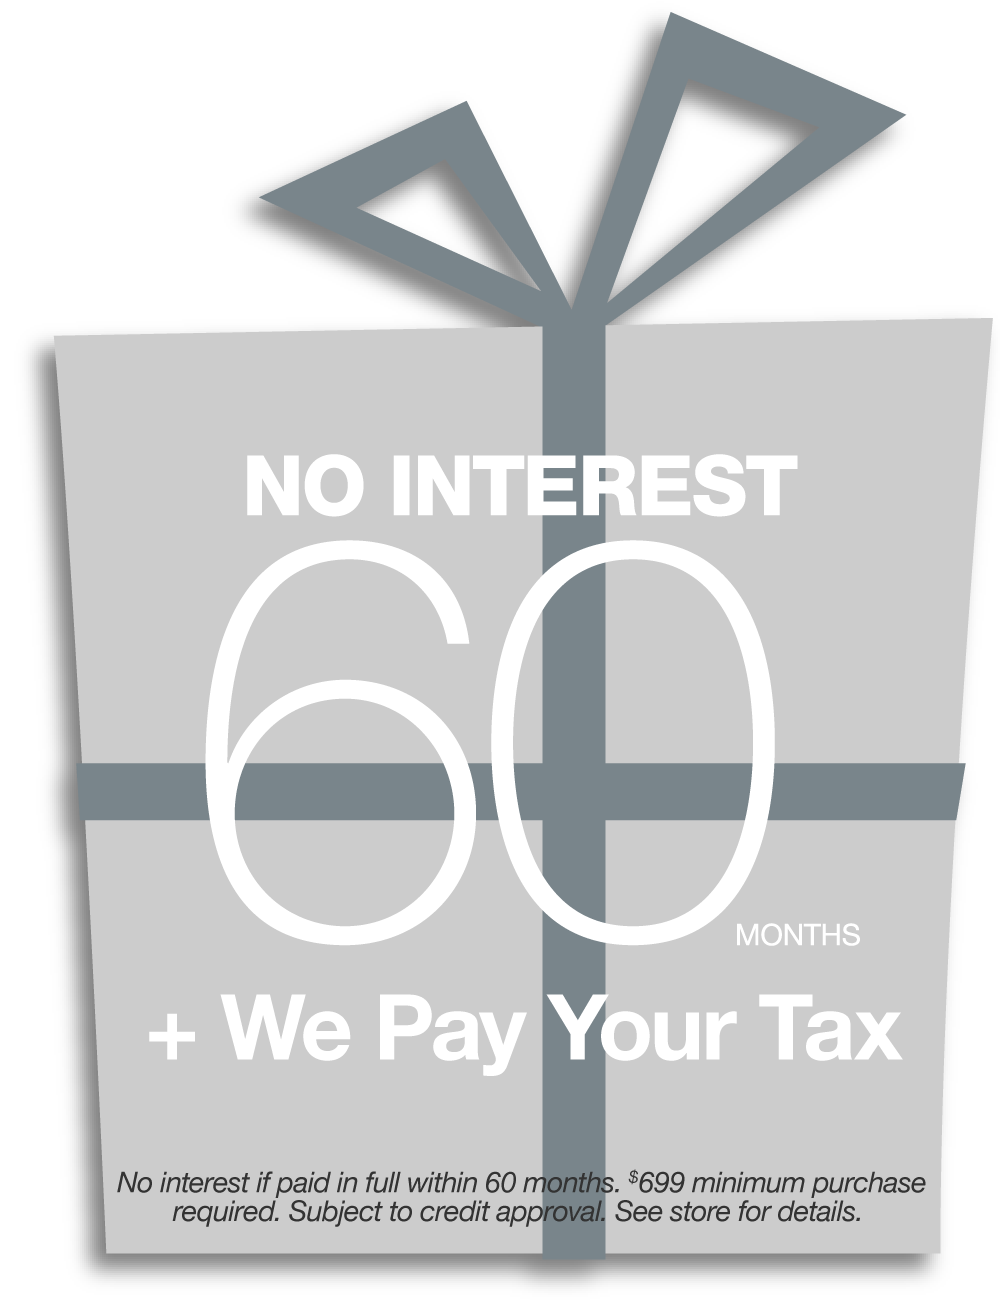 No Interest for 60 Months + We Pay Your Tax. See store for details.